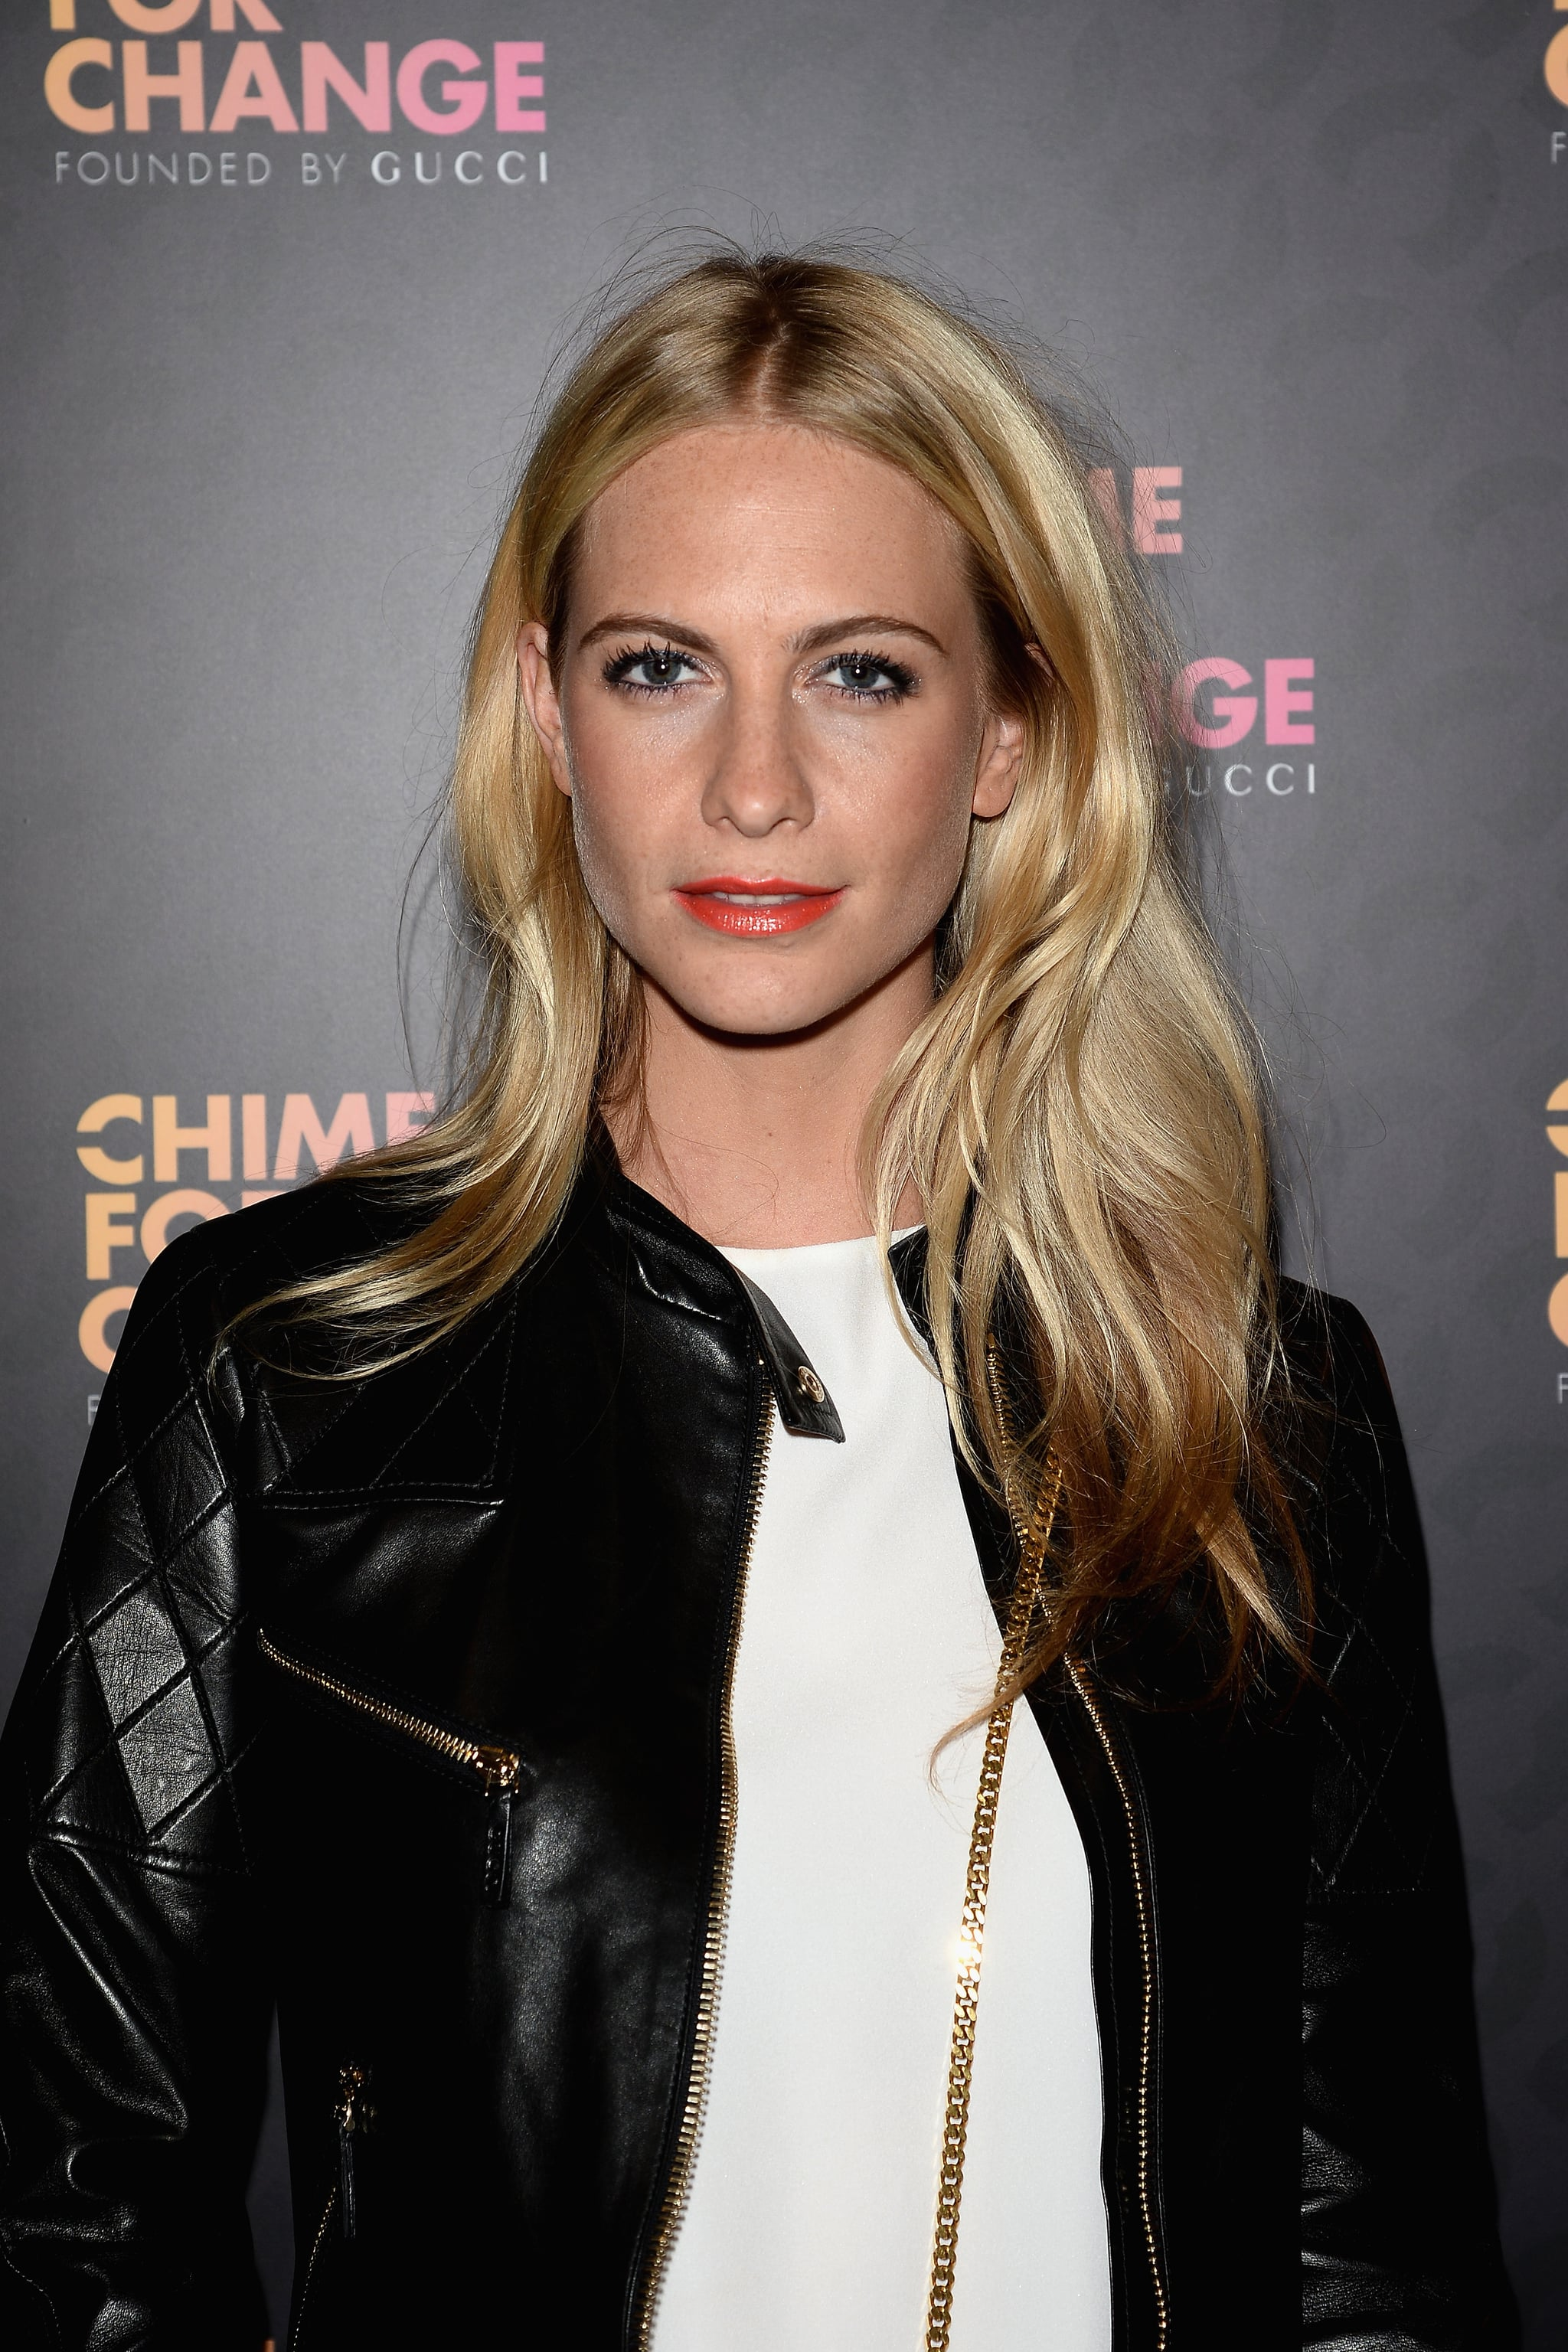 Poppy Delevingne wore her standard mussed waves and an electric orange lip color.